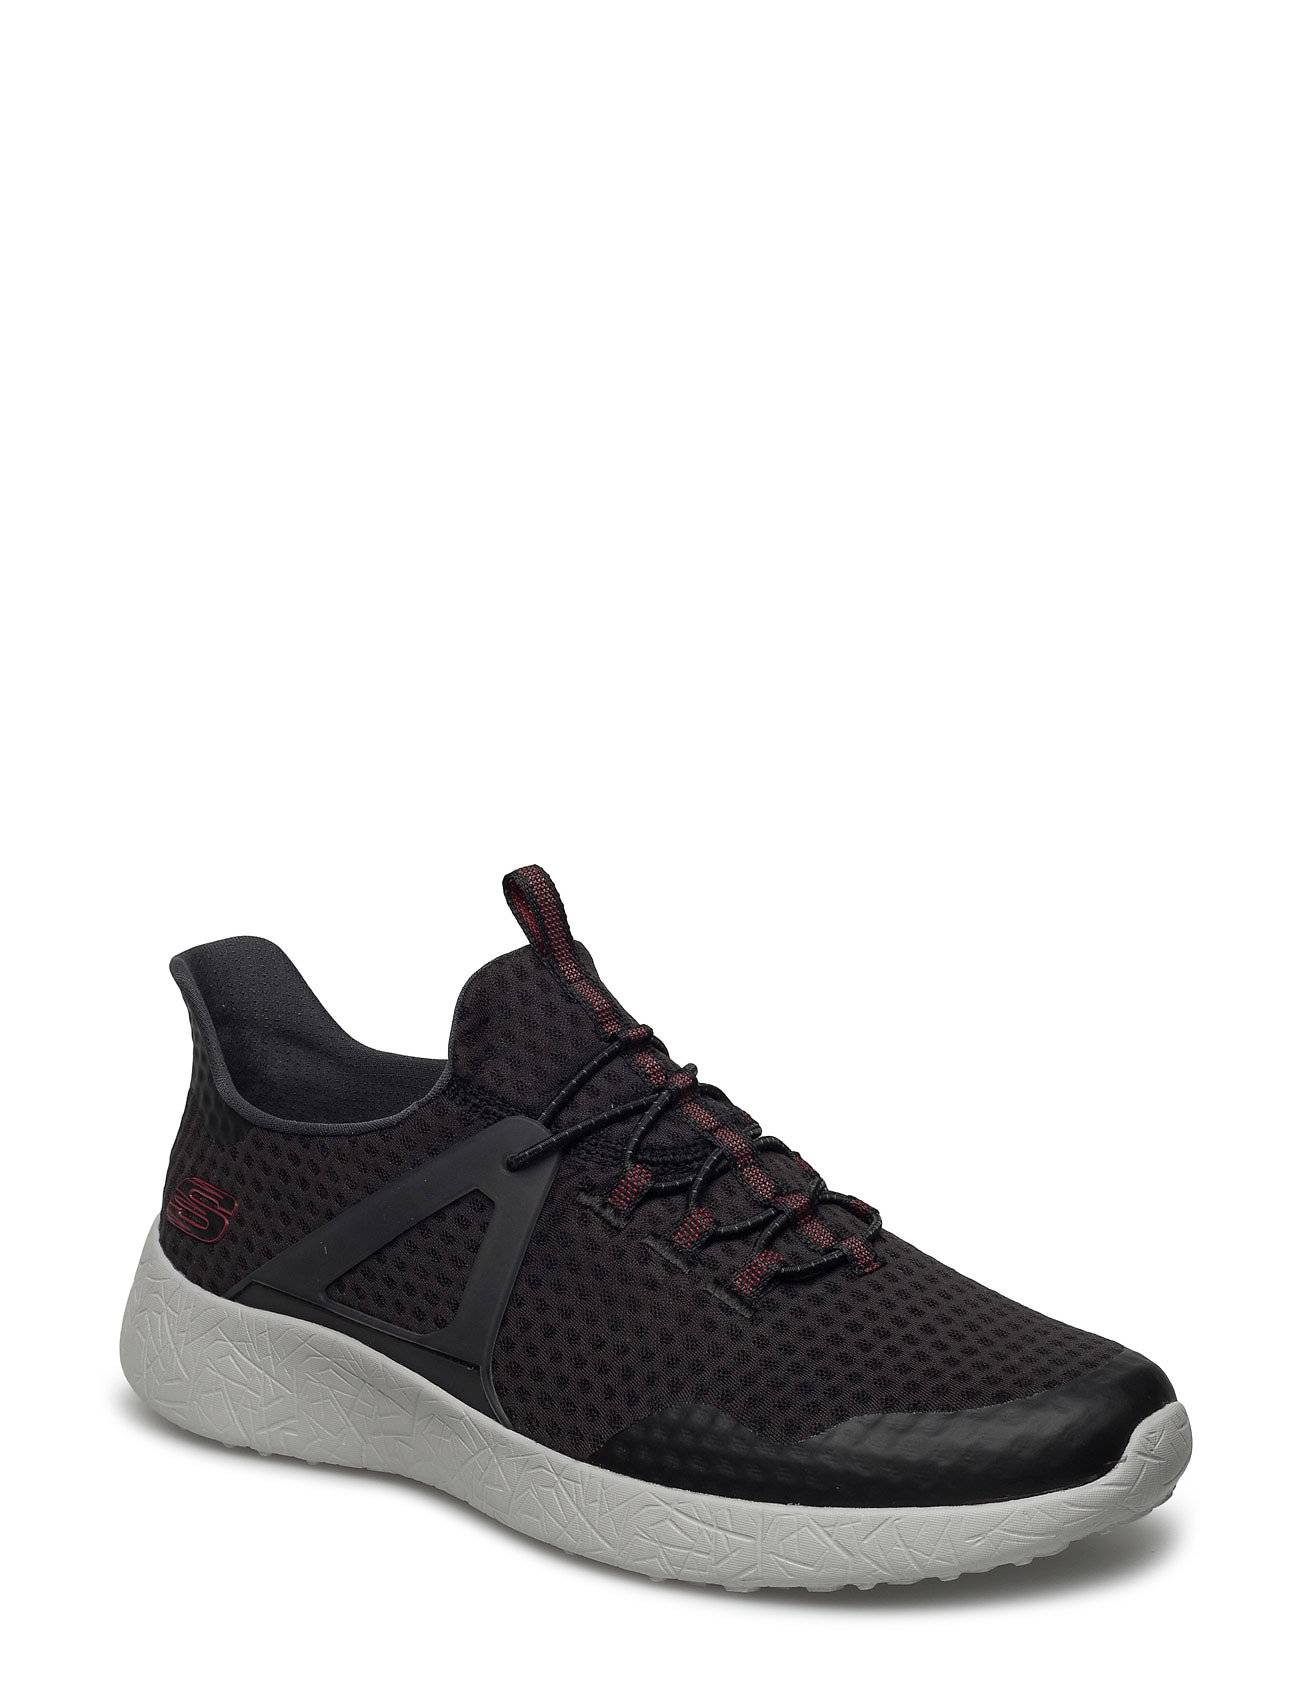 Skechers Mens Burst Shinz